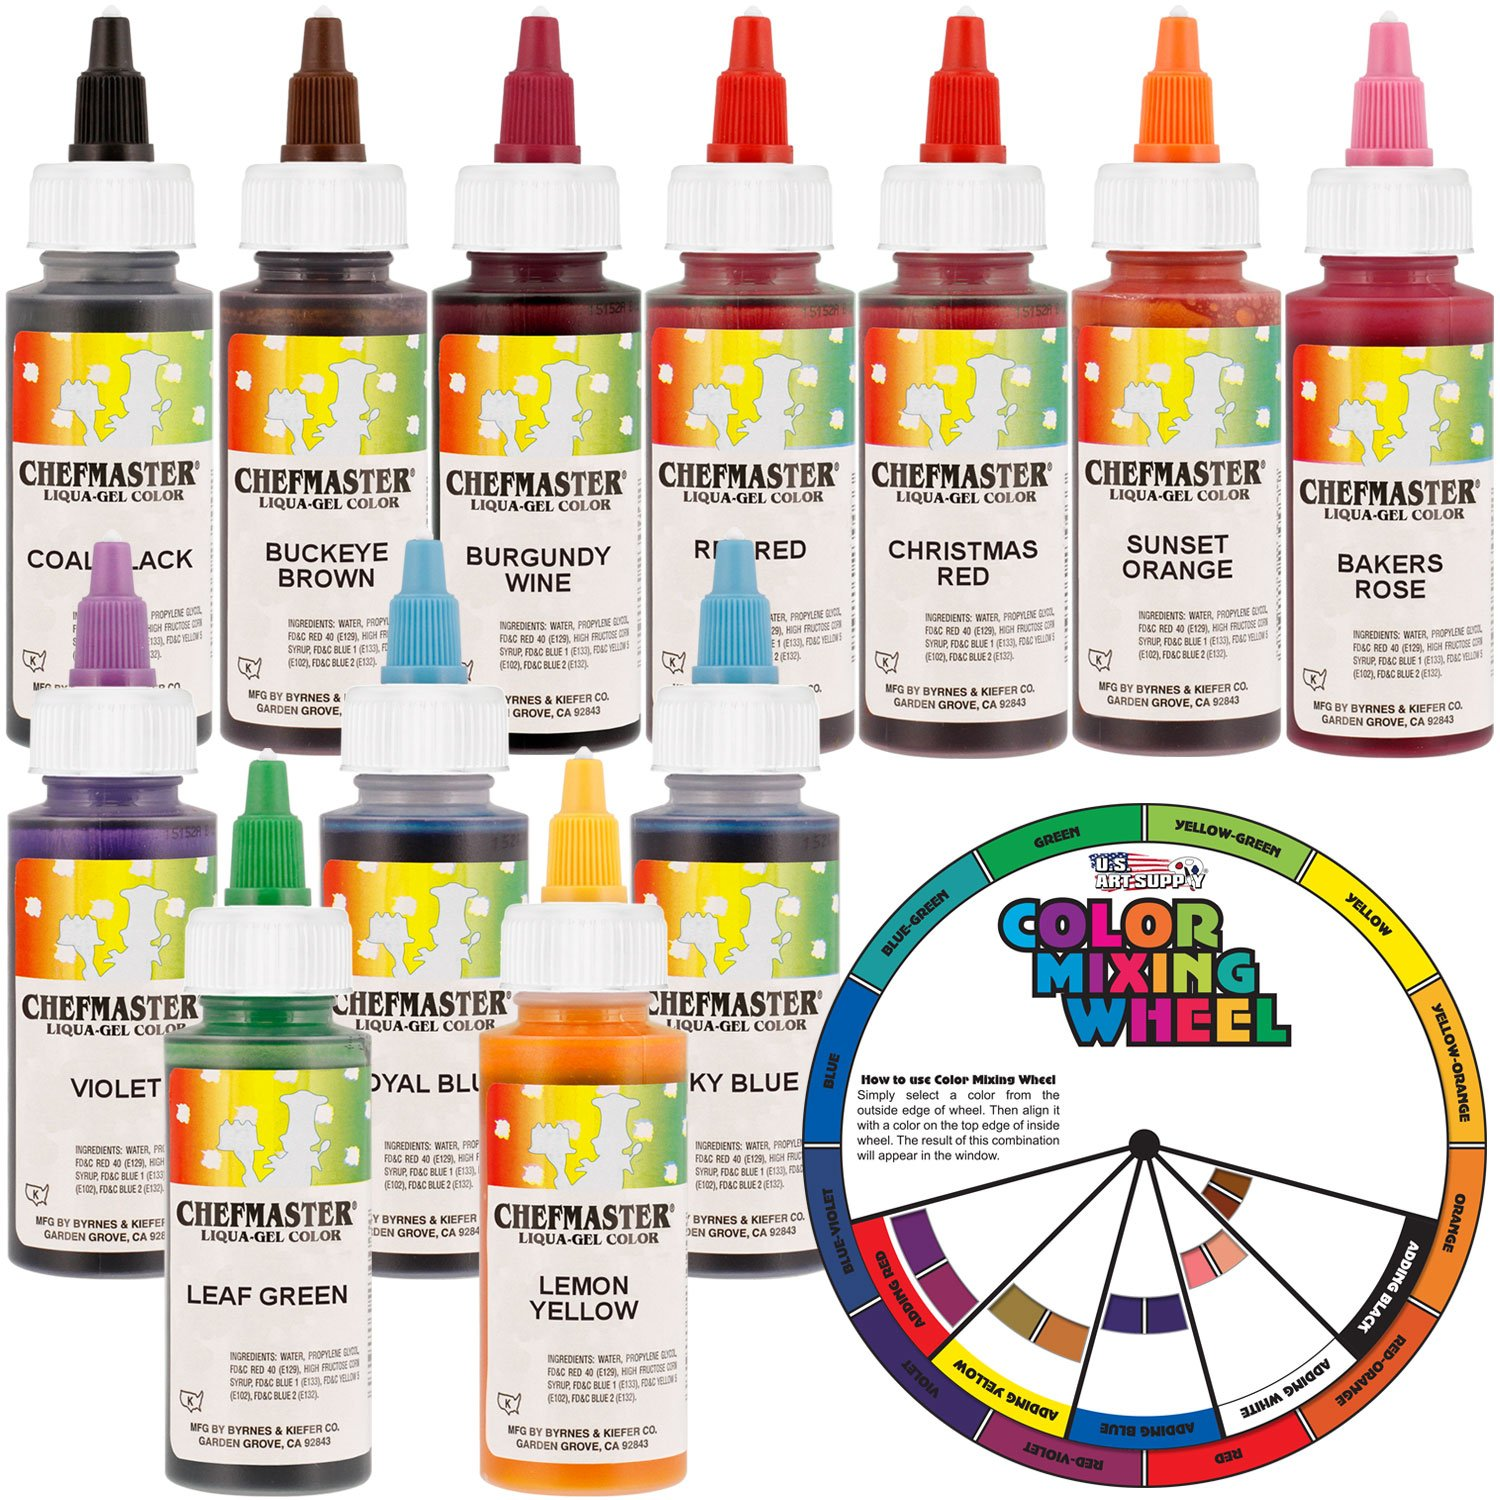 12 Food Color Chefmaster by US Cake Supply 2.3-Ounce Liqua-Gel Cake Food Coloring Variety Pack with Color Mixing Wheel by U.S. Cake Supply